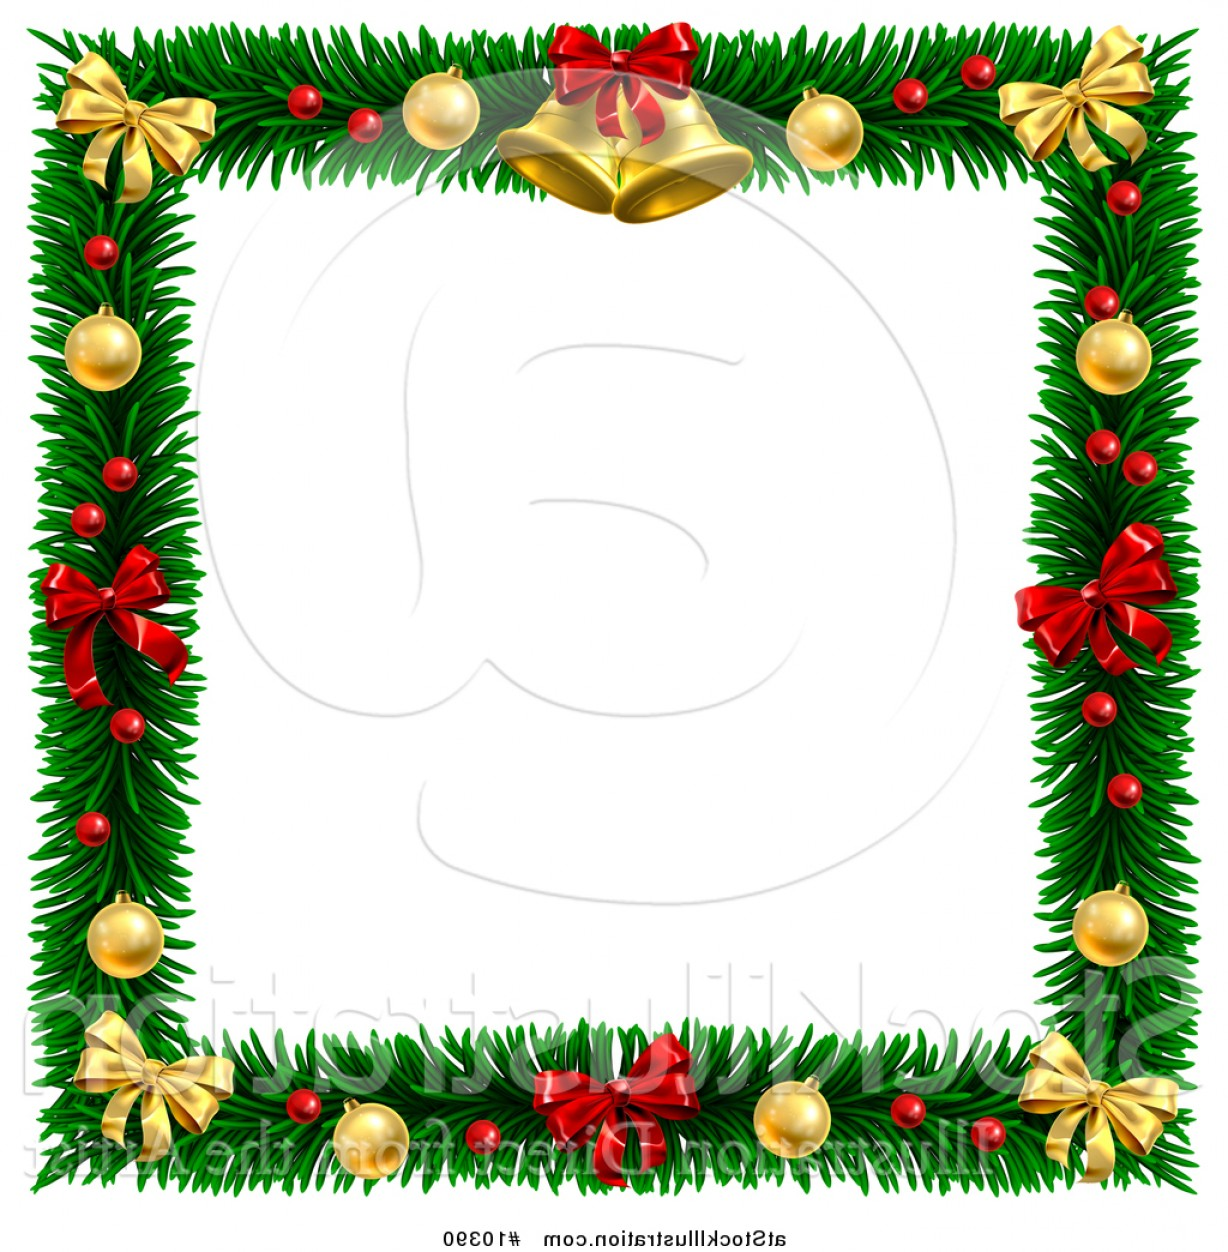 Vector Illustration Of A Christmas Wreath Border Frame With Bells.